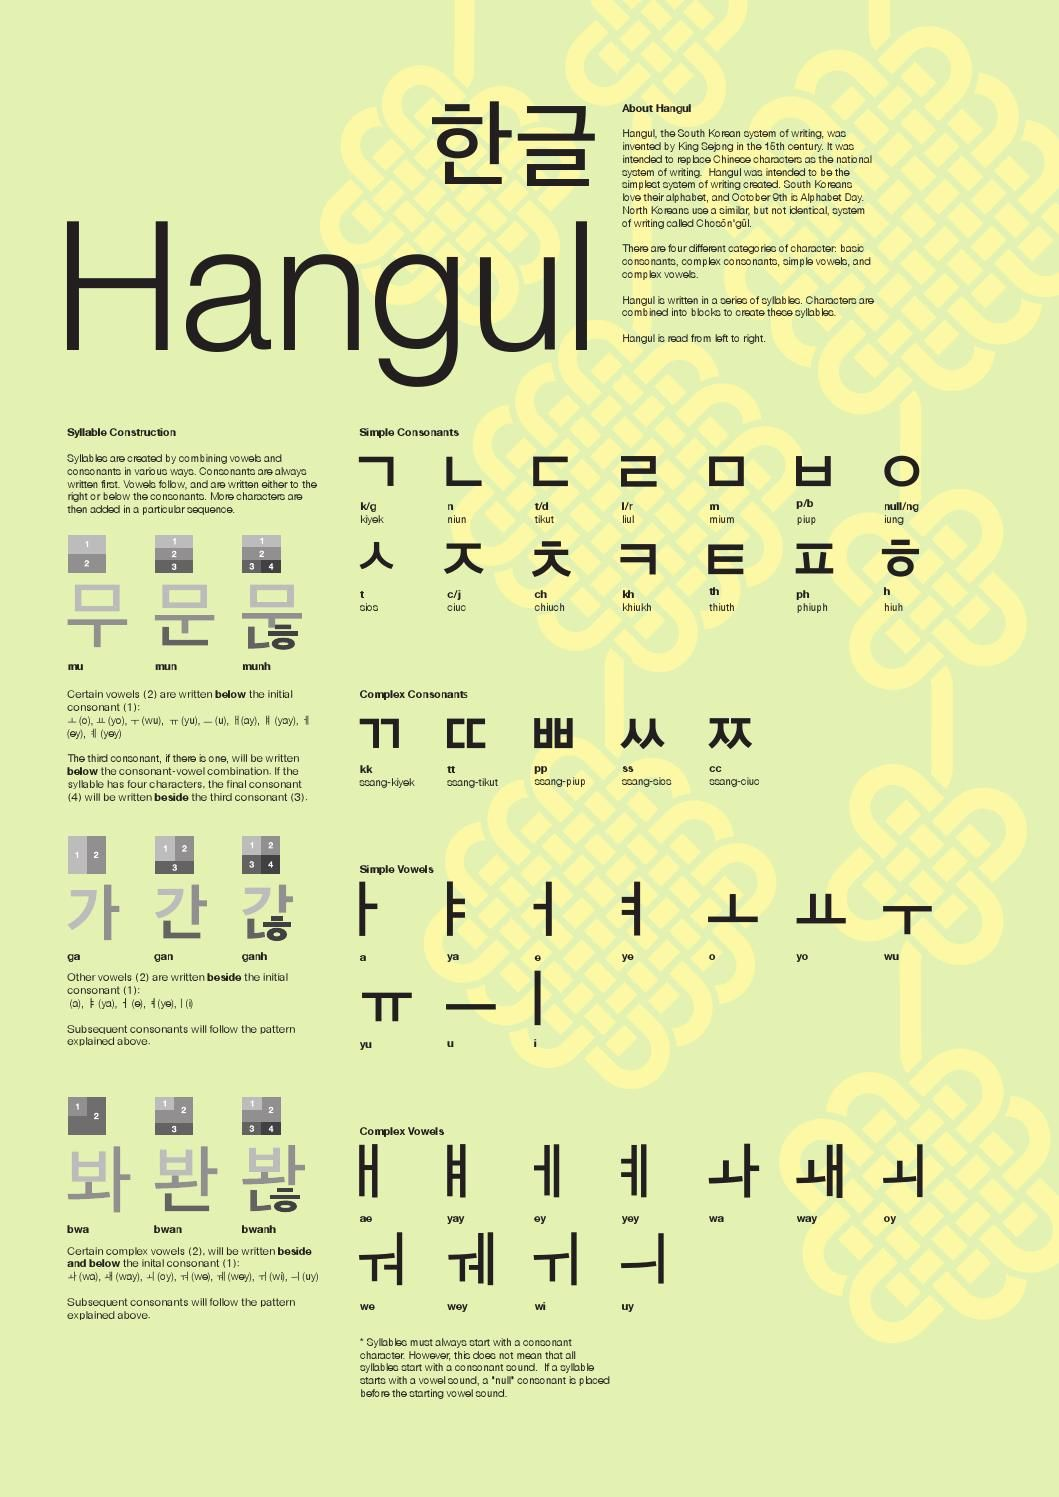 Oforan hangul | Language | Korean alphabet, Korean language, Korean